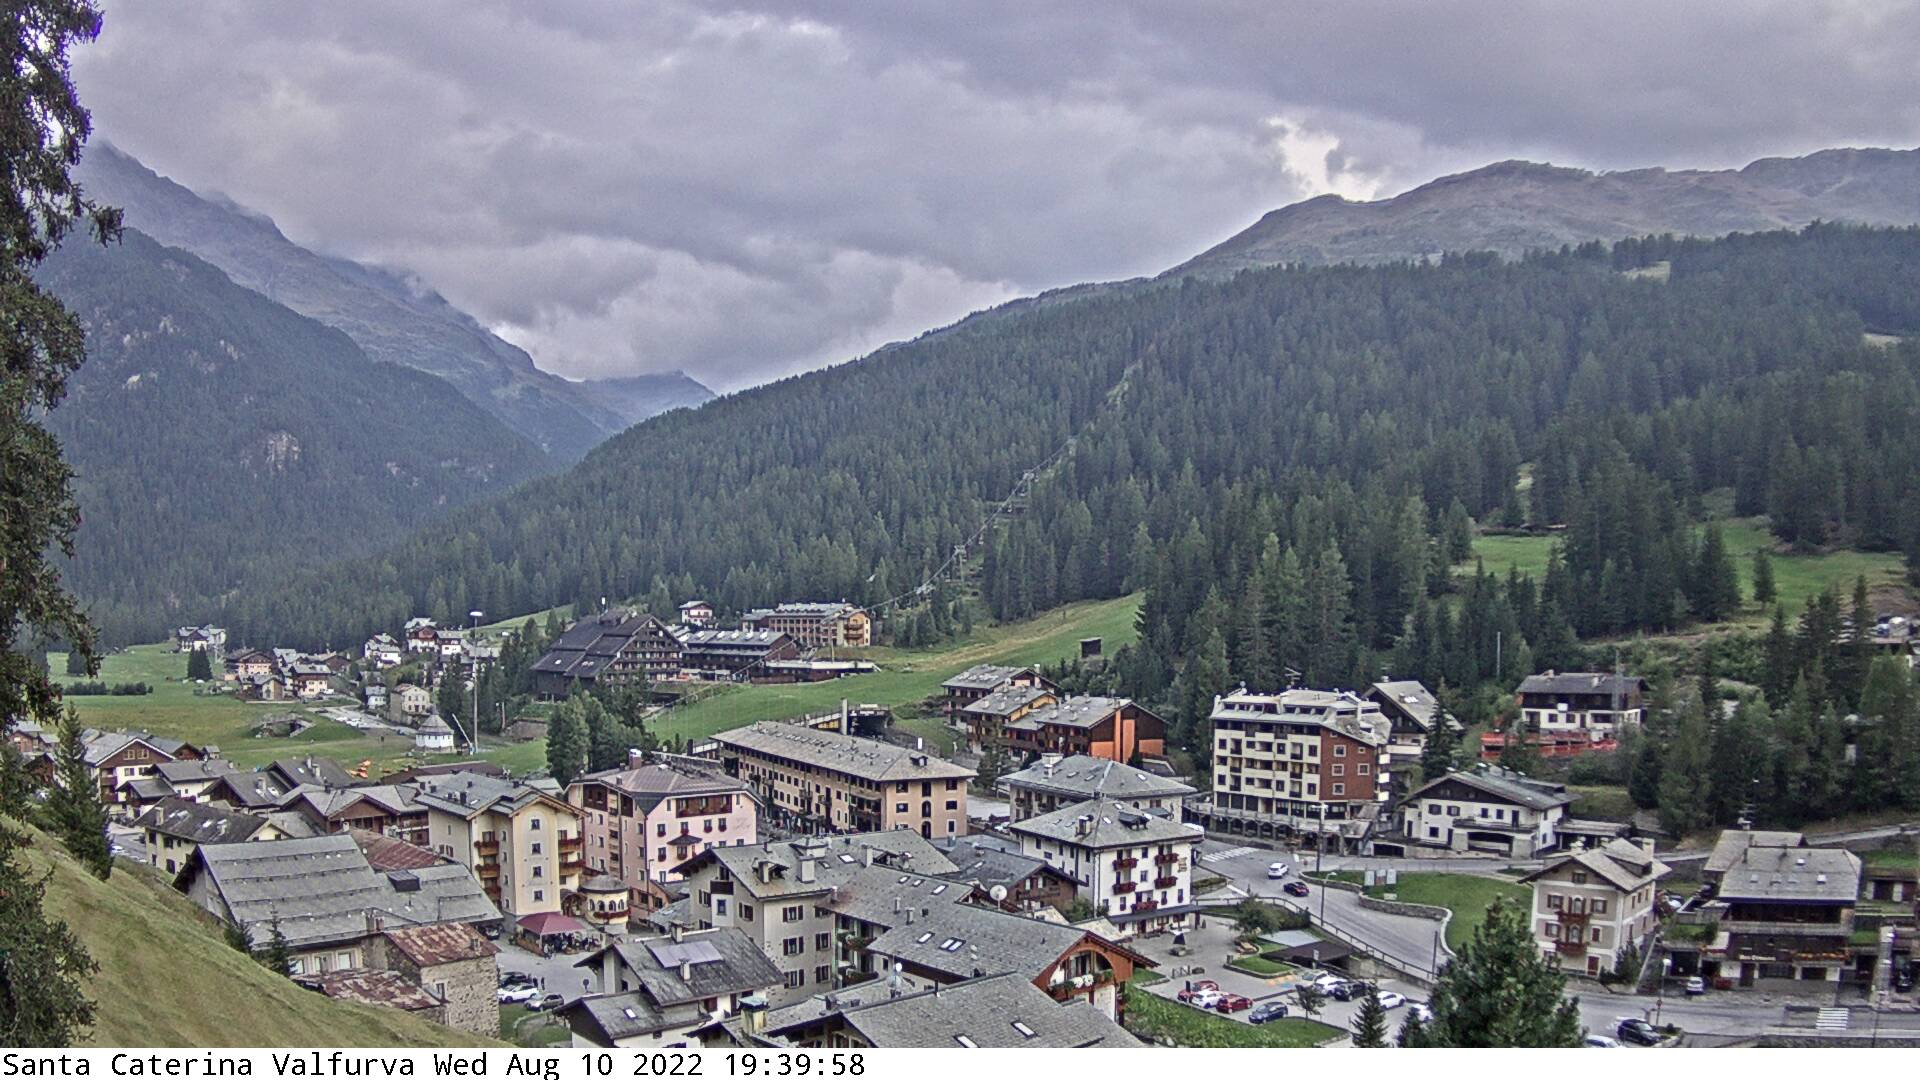 webcam paese - Santa Caterina Valfurva